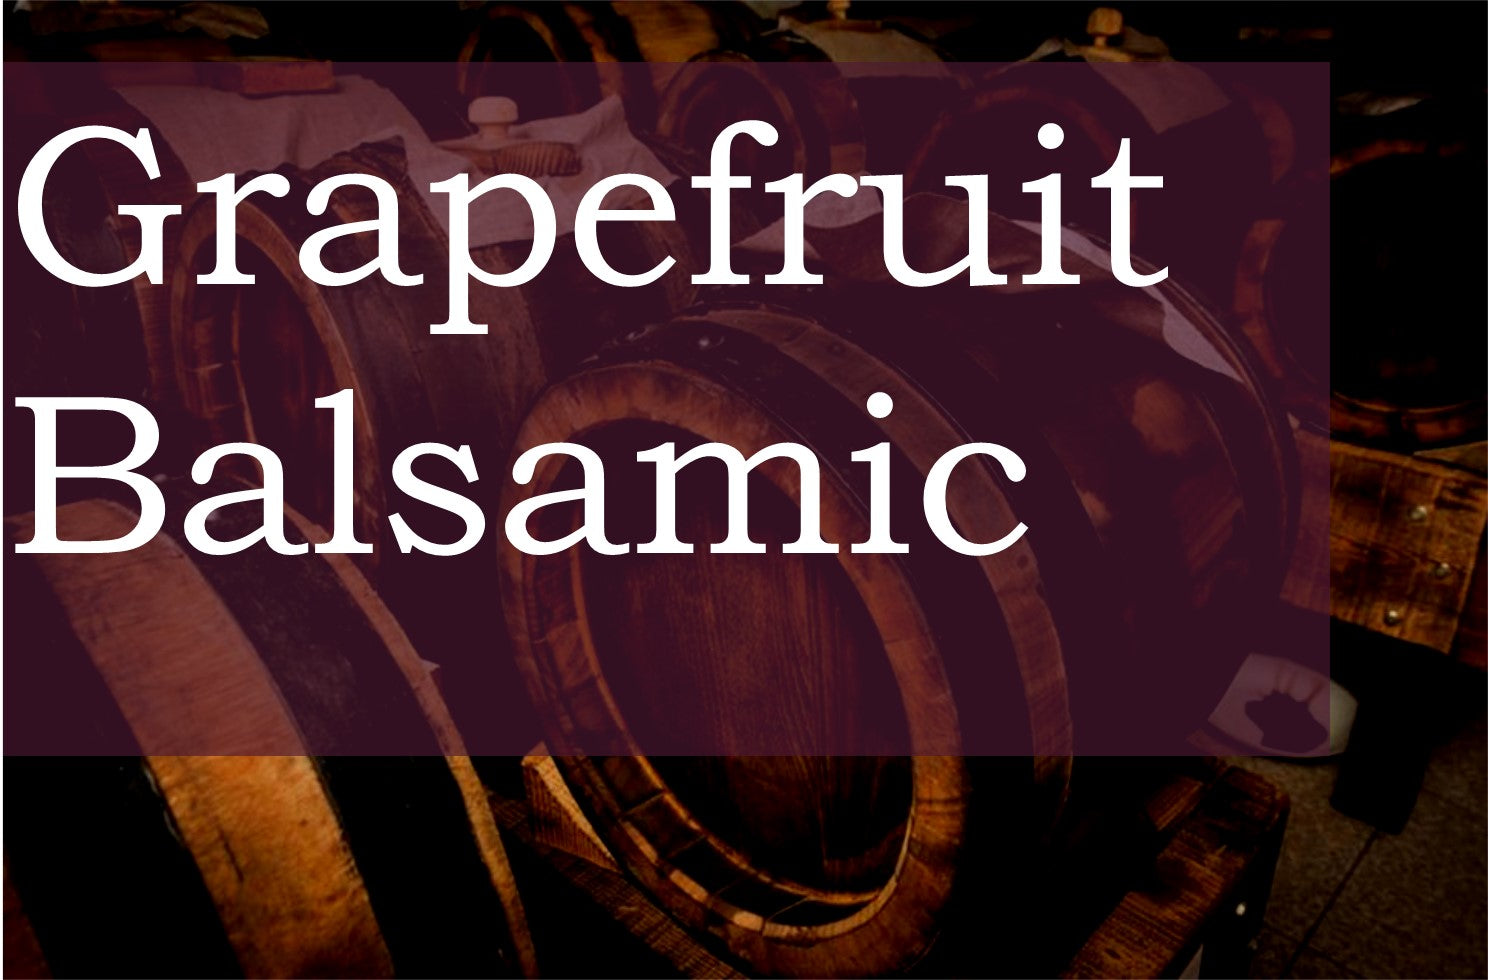 Grapefruit Balsamic Vinegar